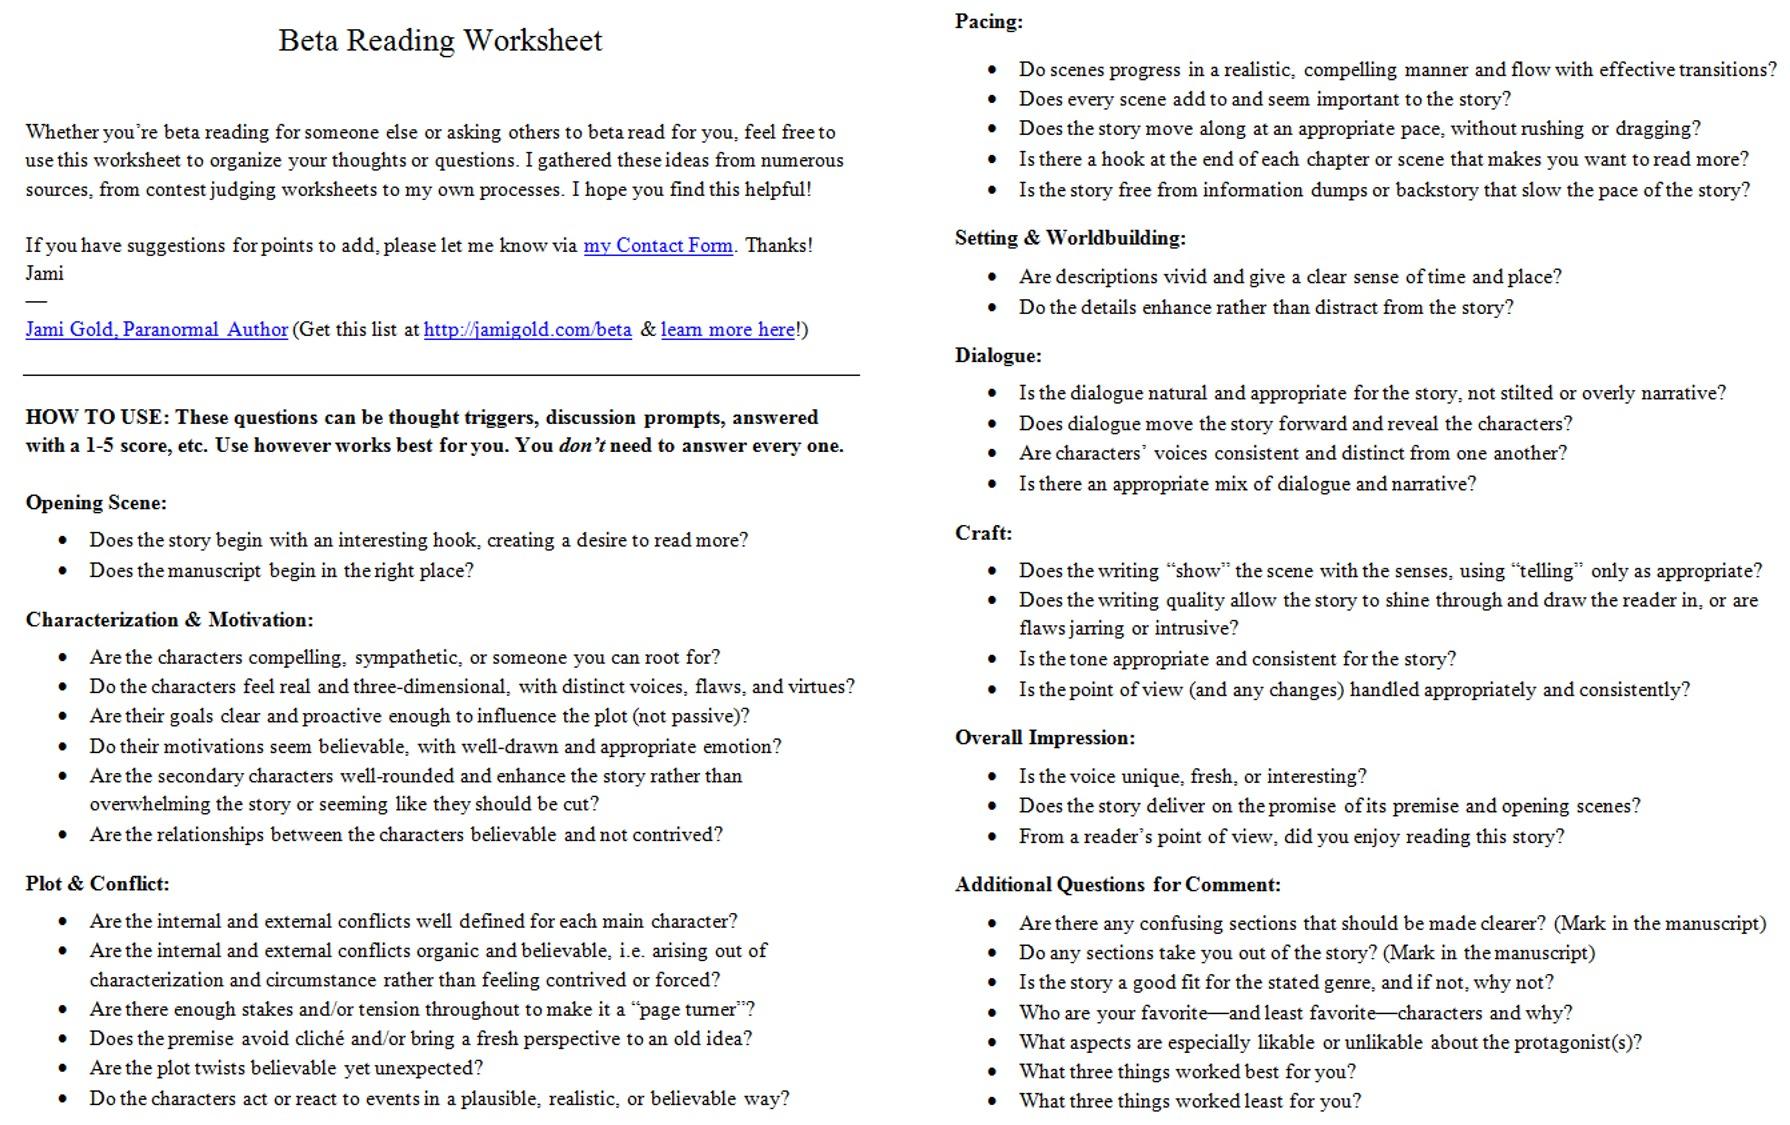 Aldiablosus  Remarkable Worksheets For Writers  Jami Gold Paranormal Author With Exquisite Screen Shot Of The Twopage Beta Reading Worksheet With Beauteous Olympic Math Worksheets Also Missing Punctuation Worksheets In Addition Learning The Letter A Worksheets And Balanced And Unbalanced Chemical Equations Worksheet As Well As St Grade Esl Worksheets Additionally Literary Genre Worksheets From Jamigoldcom With Aldiablosus  Exquisite Worksheets For Writers  Jami Gold Paranormal Author With Beauteous Screen Shot Of The Twopage Beta Reading Worksheet And Remarkable Olympic Math Worksheets Also Missing Punctuation Worksheets In Addition Learning The Letter A Worksheets From Jamigoldcom